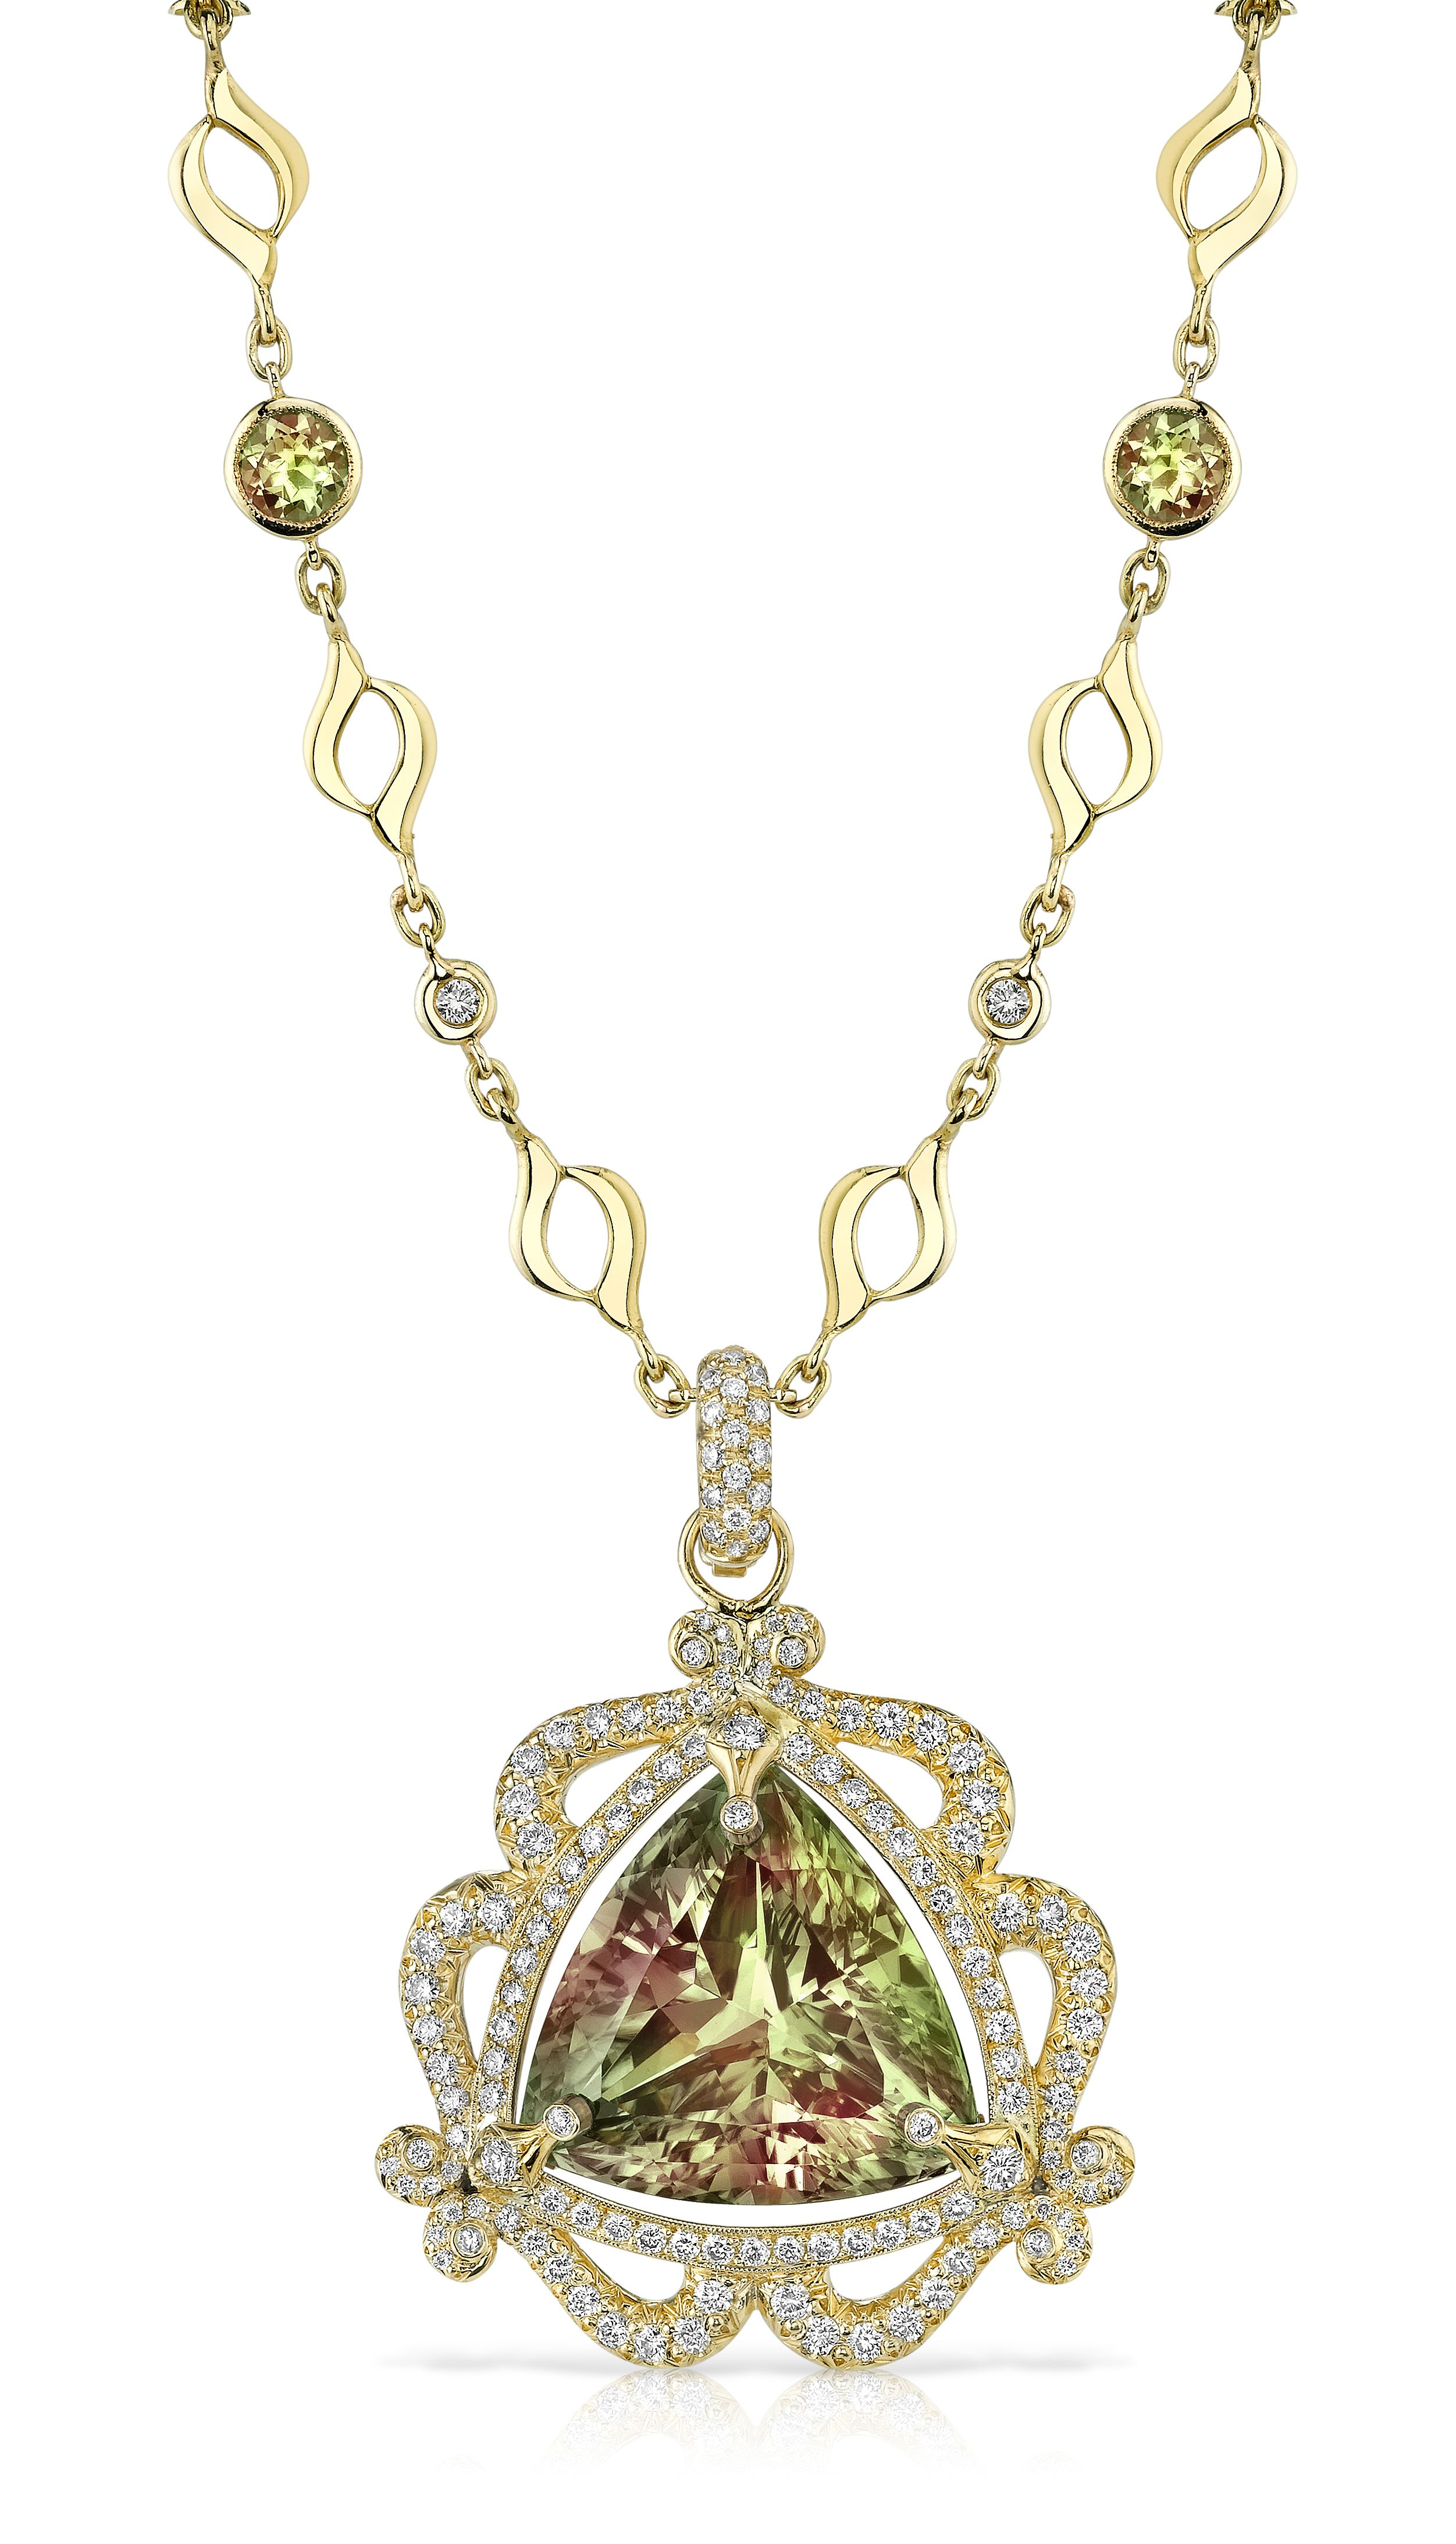 18k gold and diamond zultanite pyramid necklace by erica courtney 18k gold and diamond zultanite pyramid necklace by erica courtney aloadofball Images